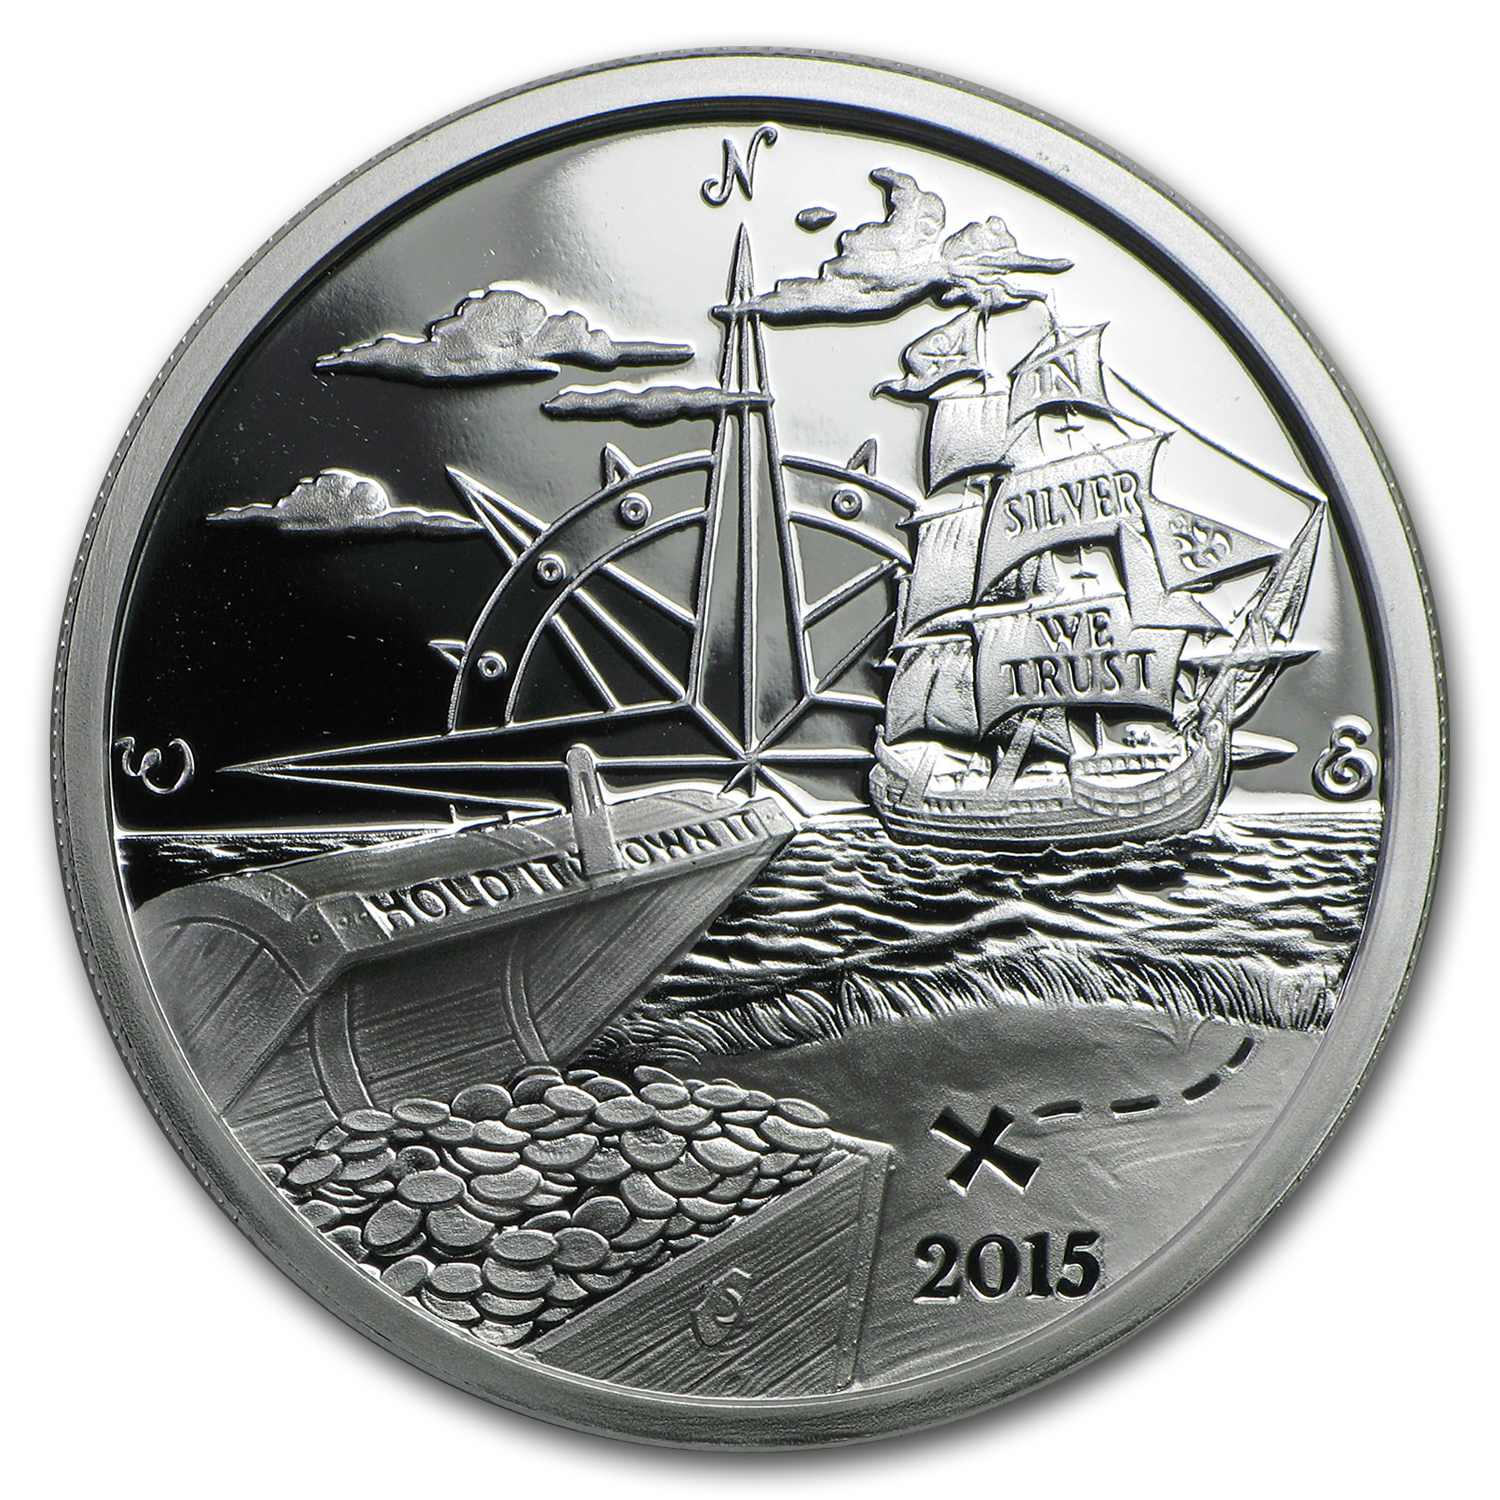 1 oz Silver Round - 2015 Finding Silverbug Island (Prooflike)